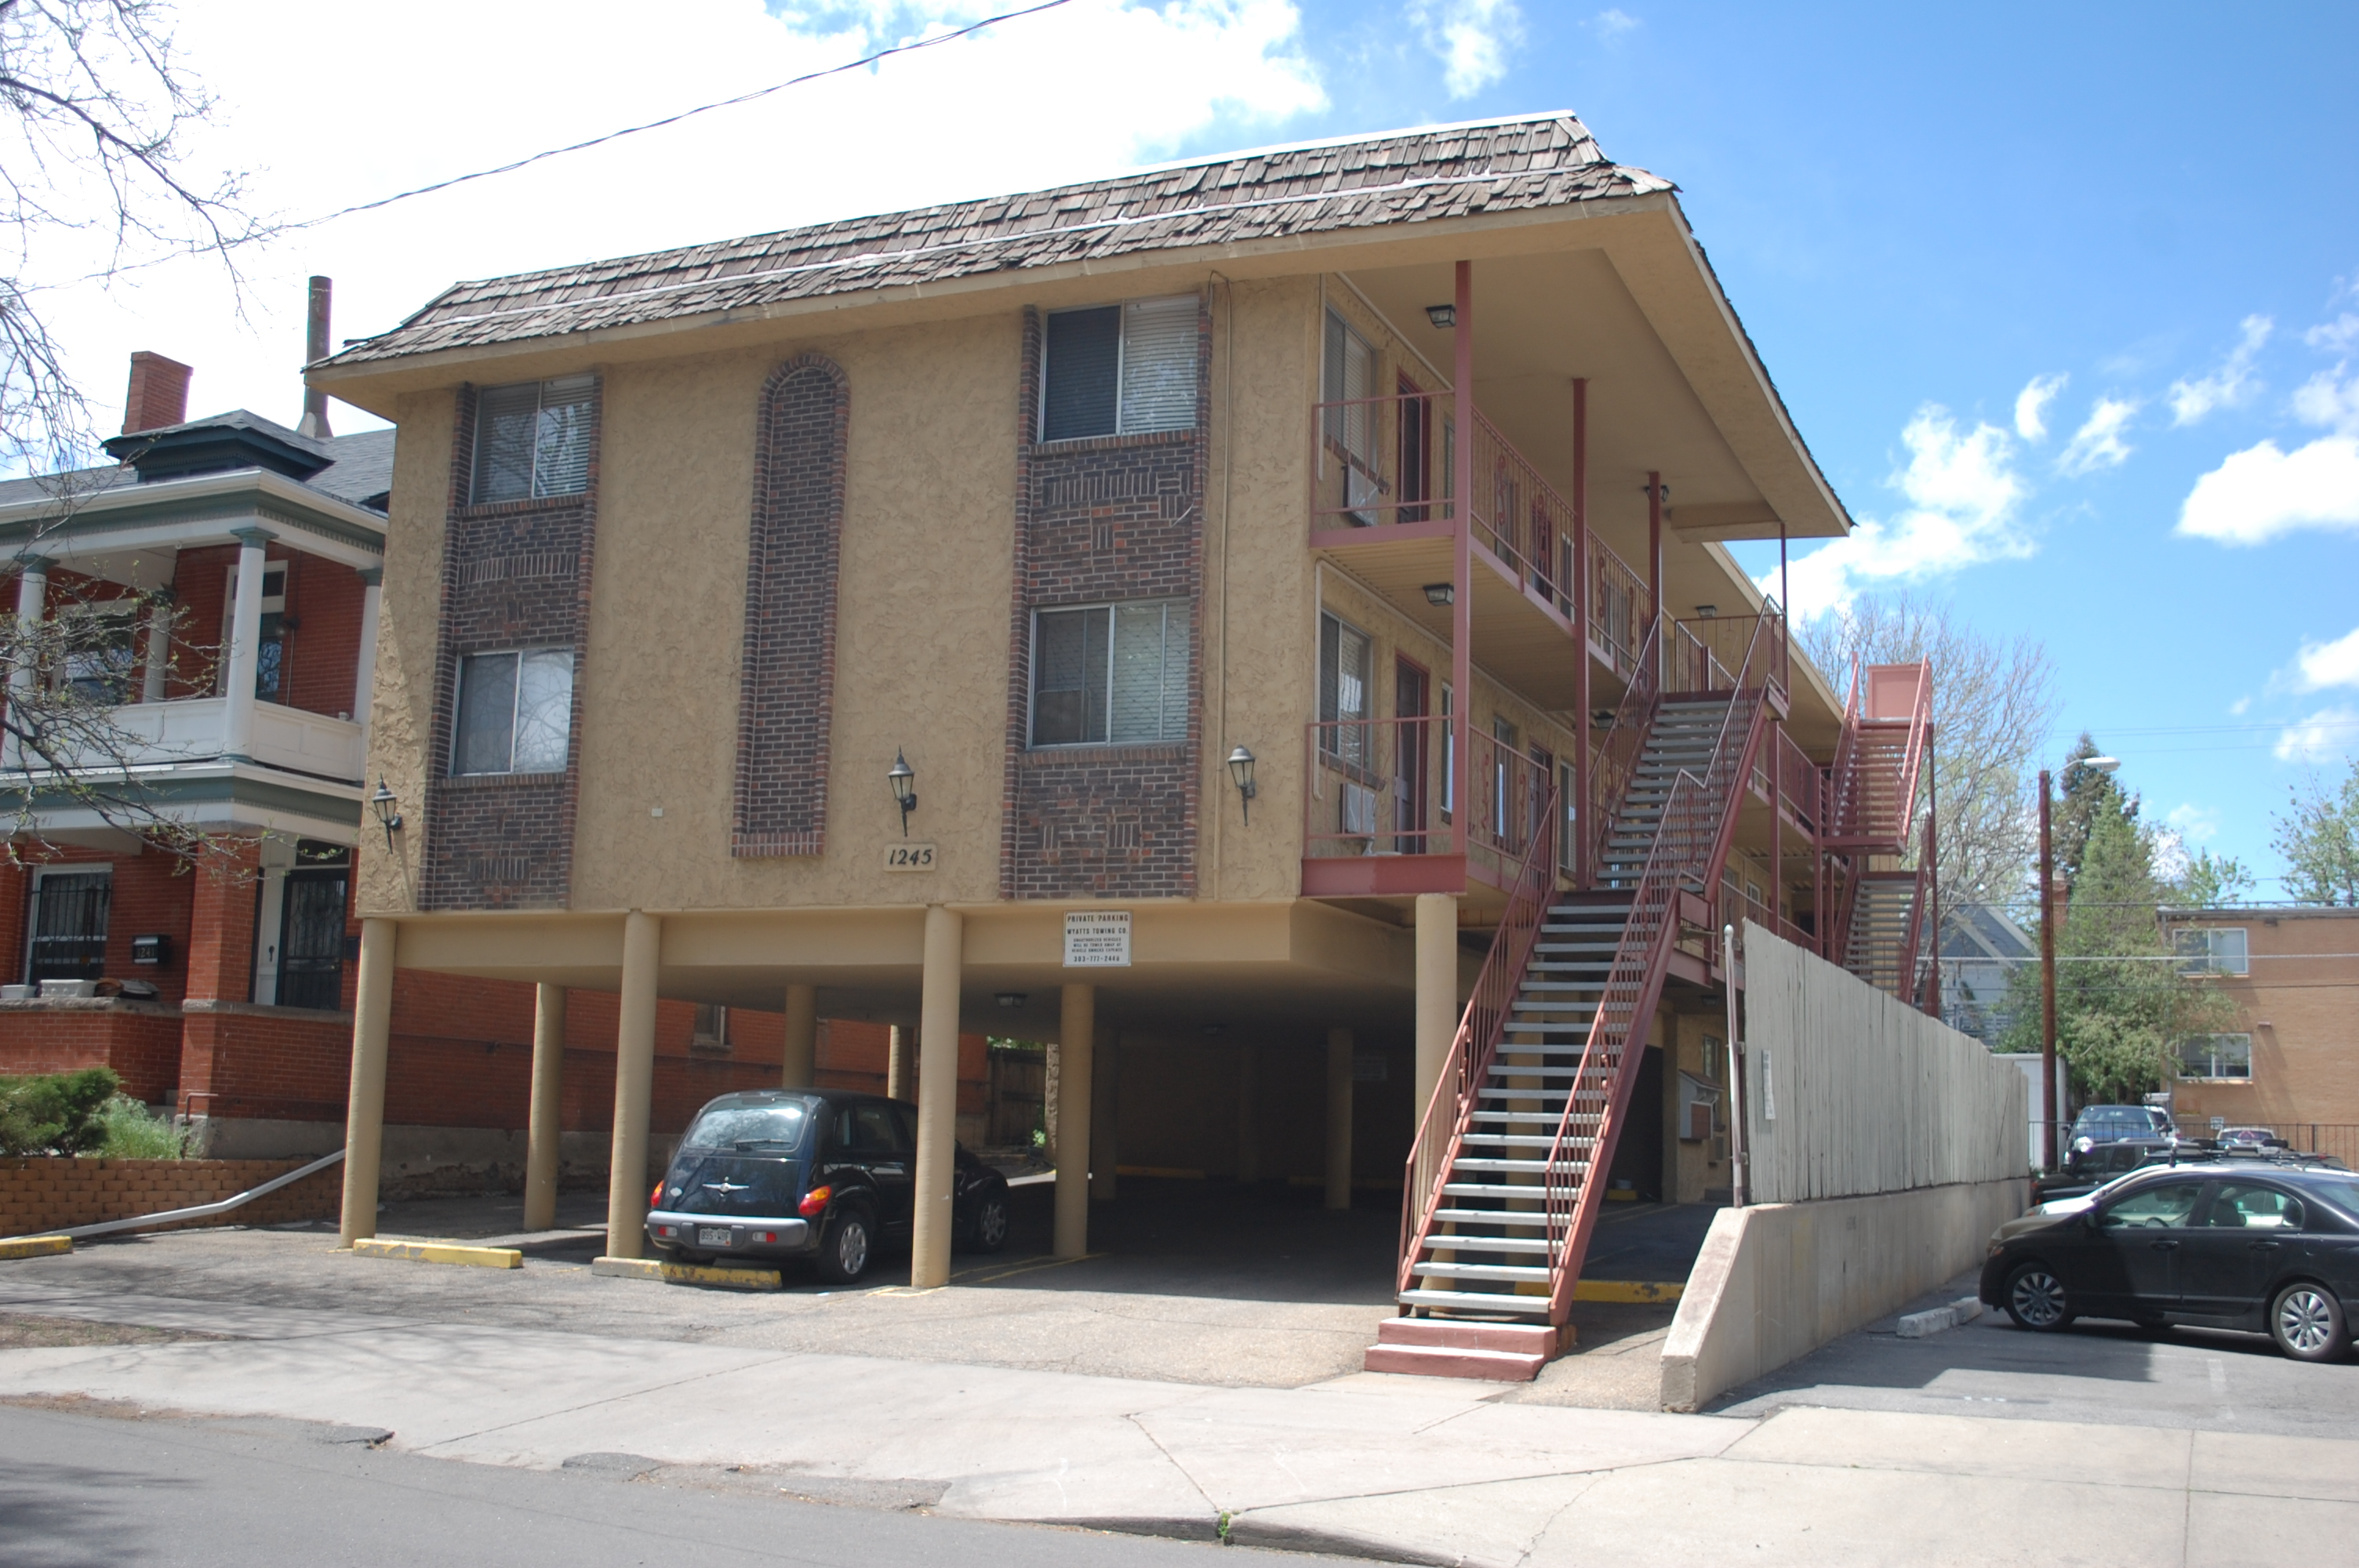 The Winstead Arms Updated Cheesman Capitol Hill 1 & 2 bdrm